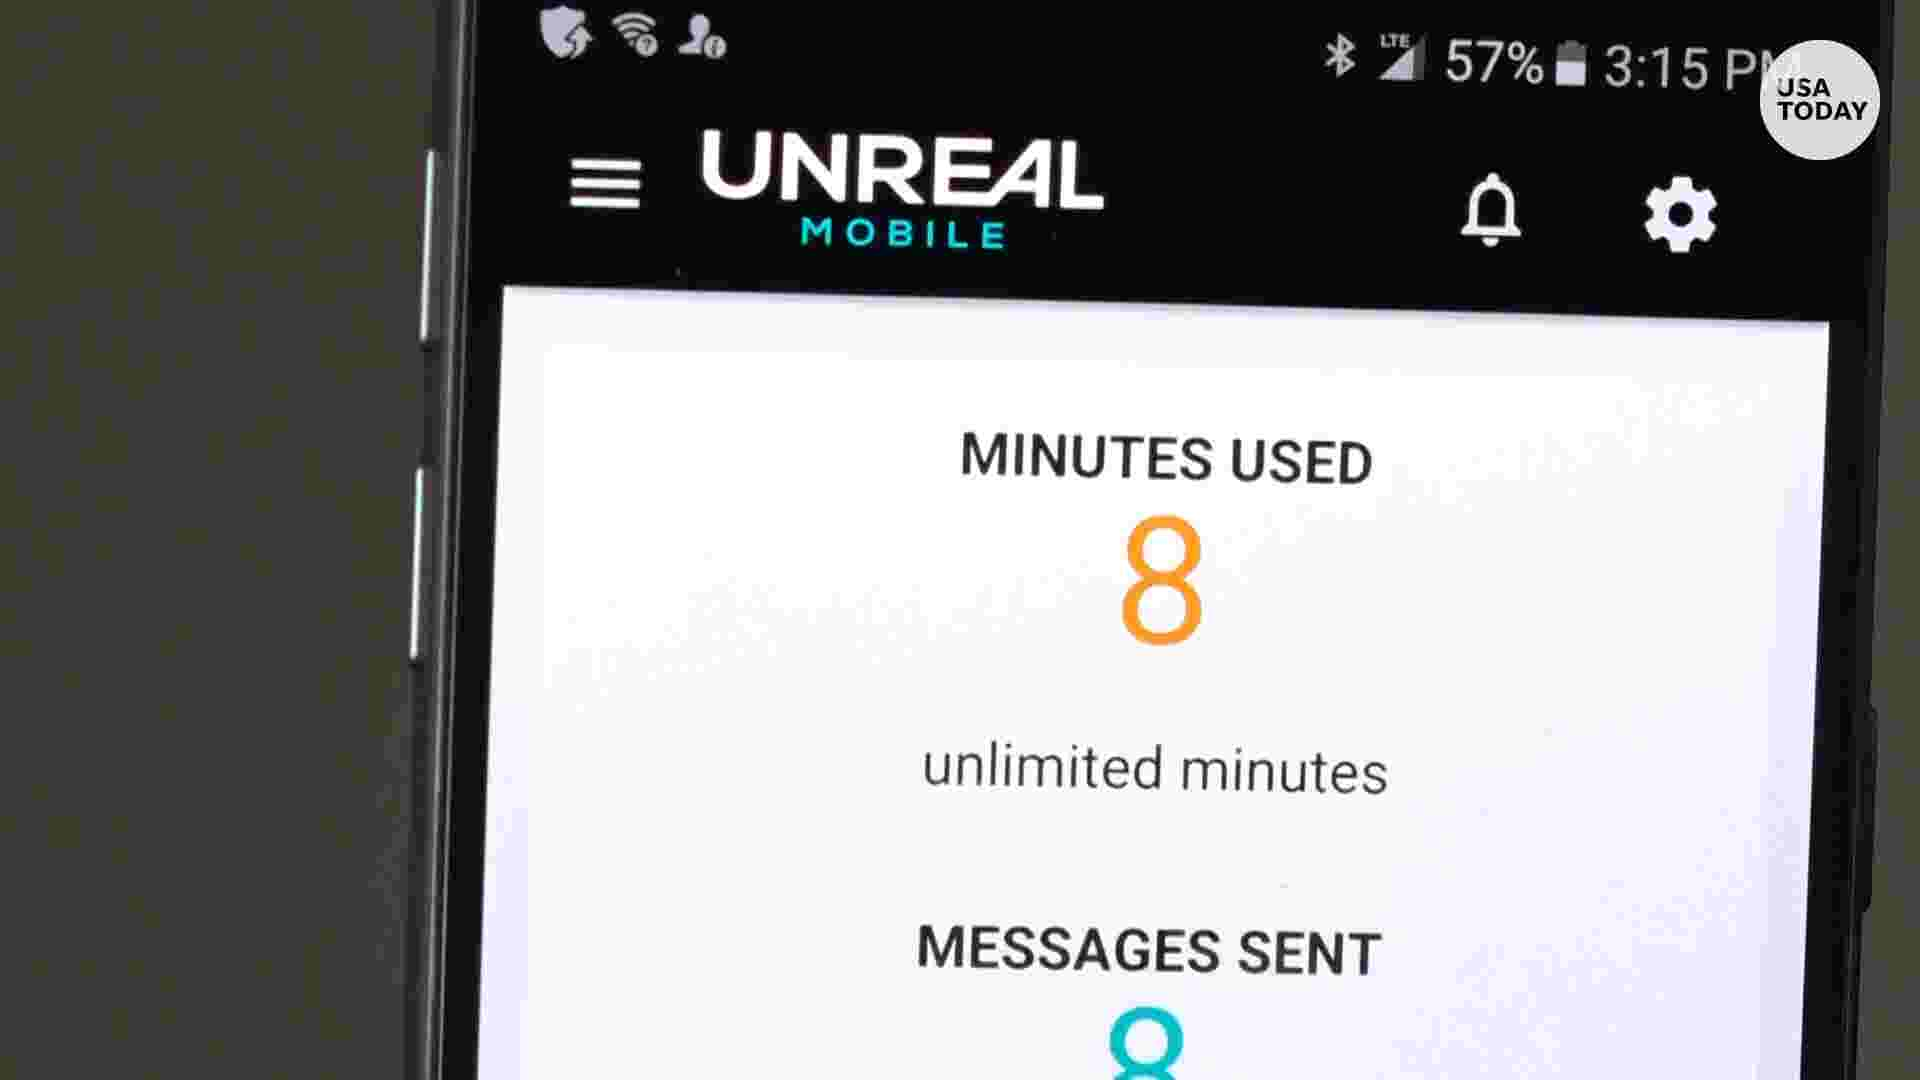 $10 UNREAL wireless plan can do it all, except this